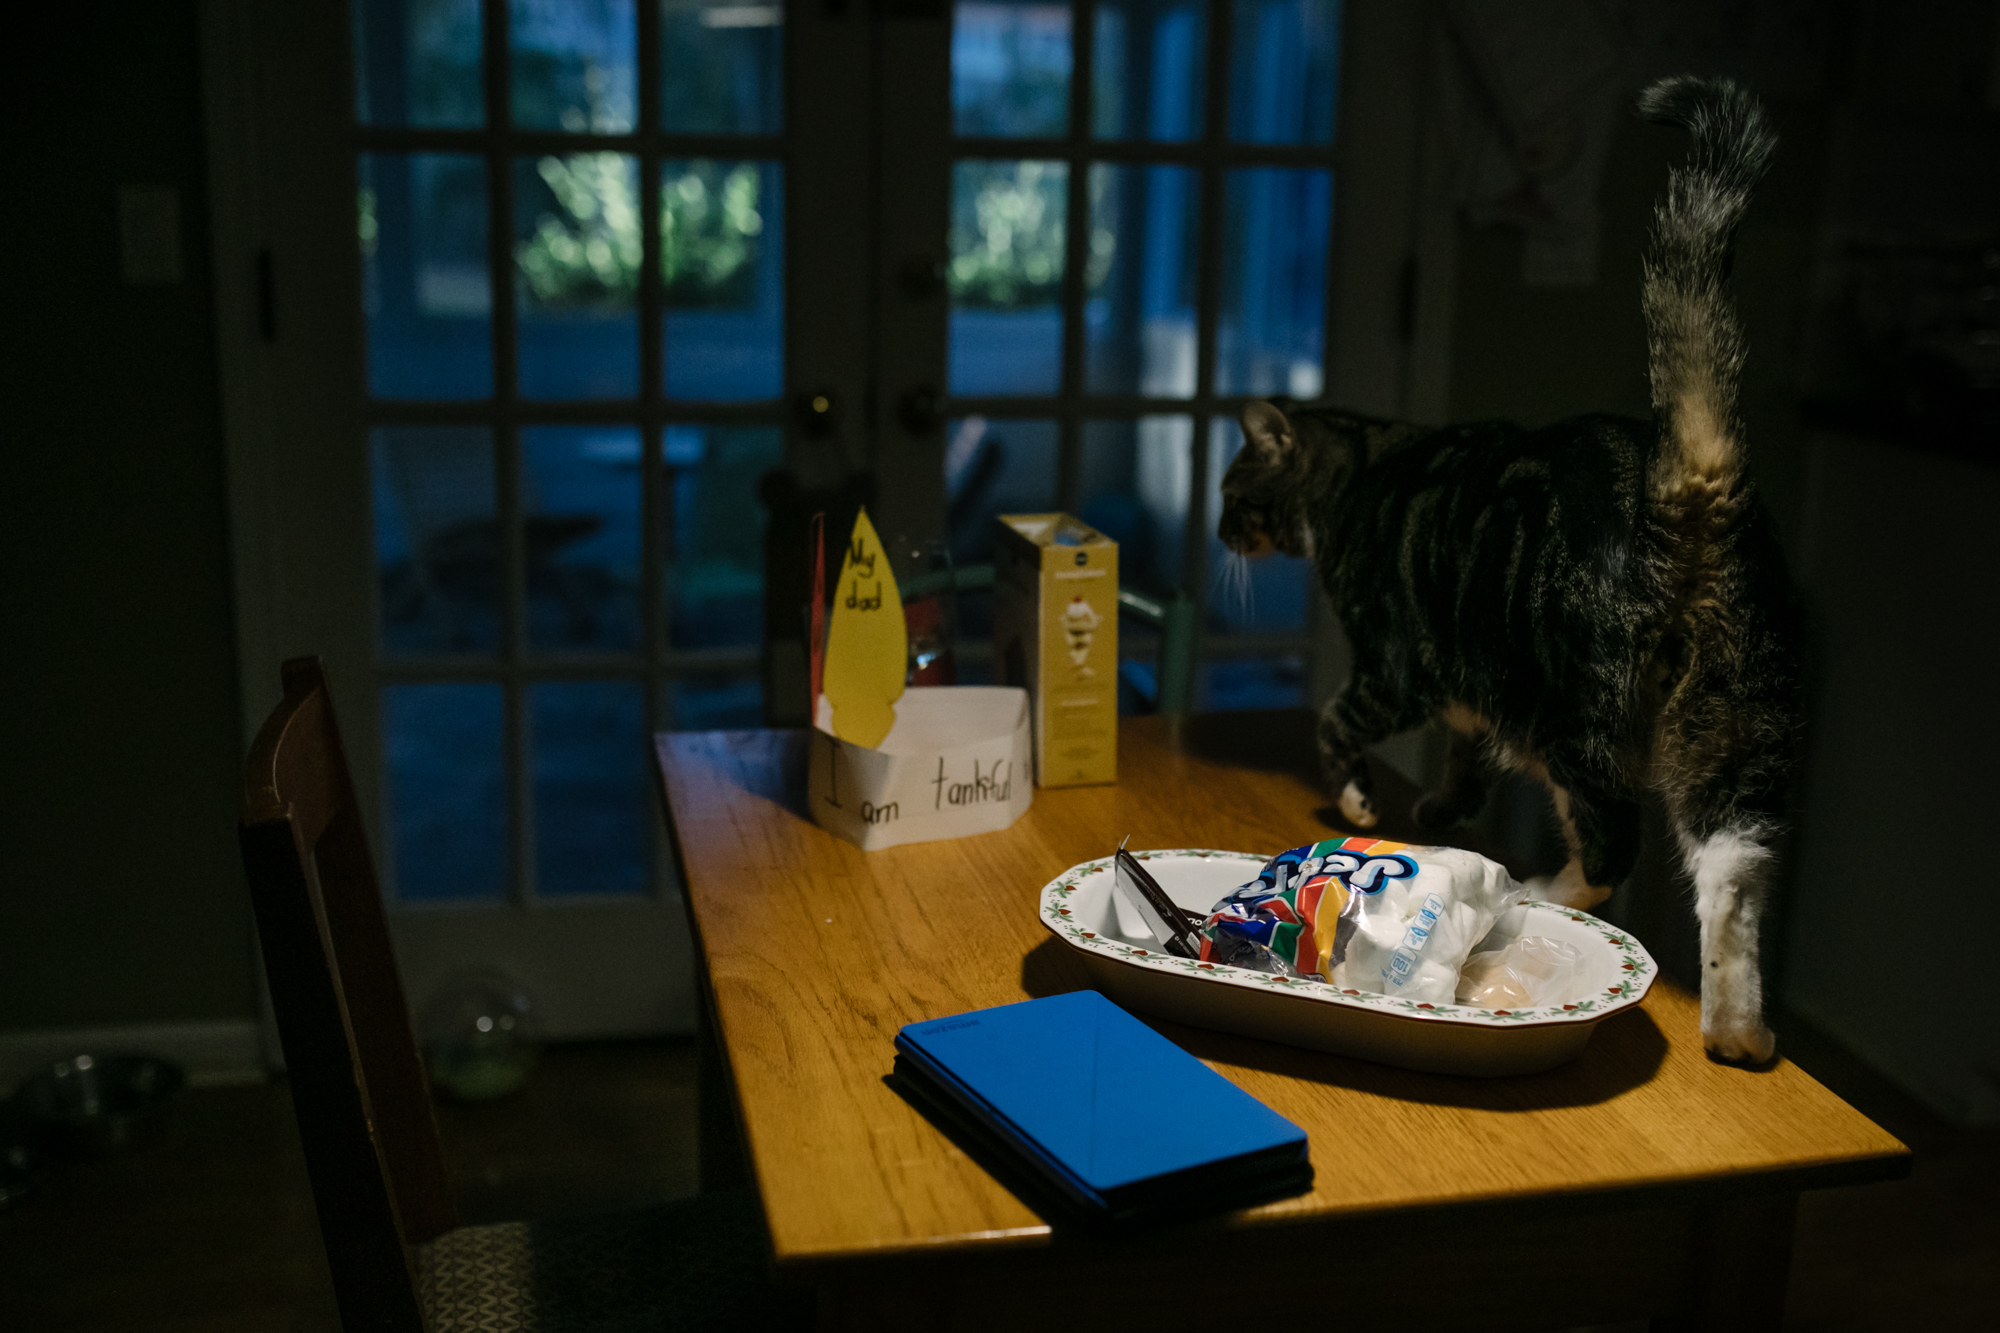 A cat walks on a table by a plate of marshmallows